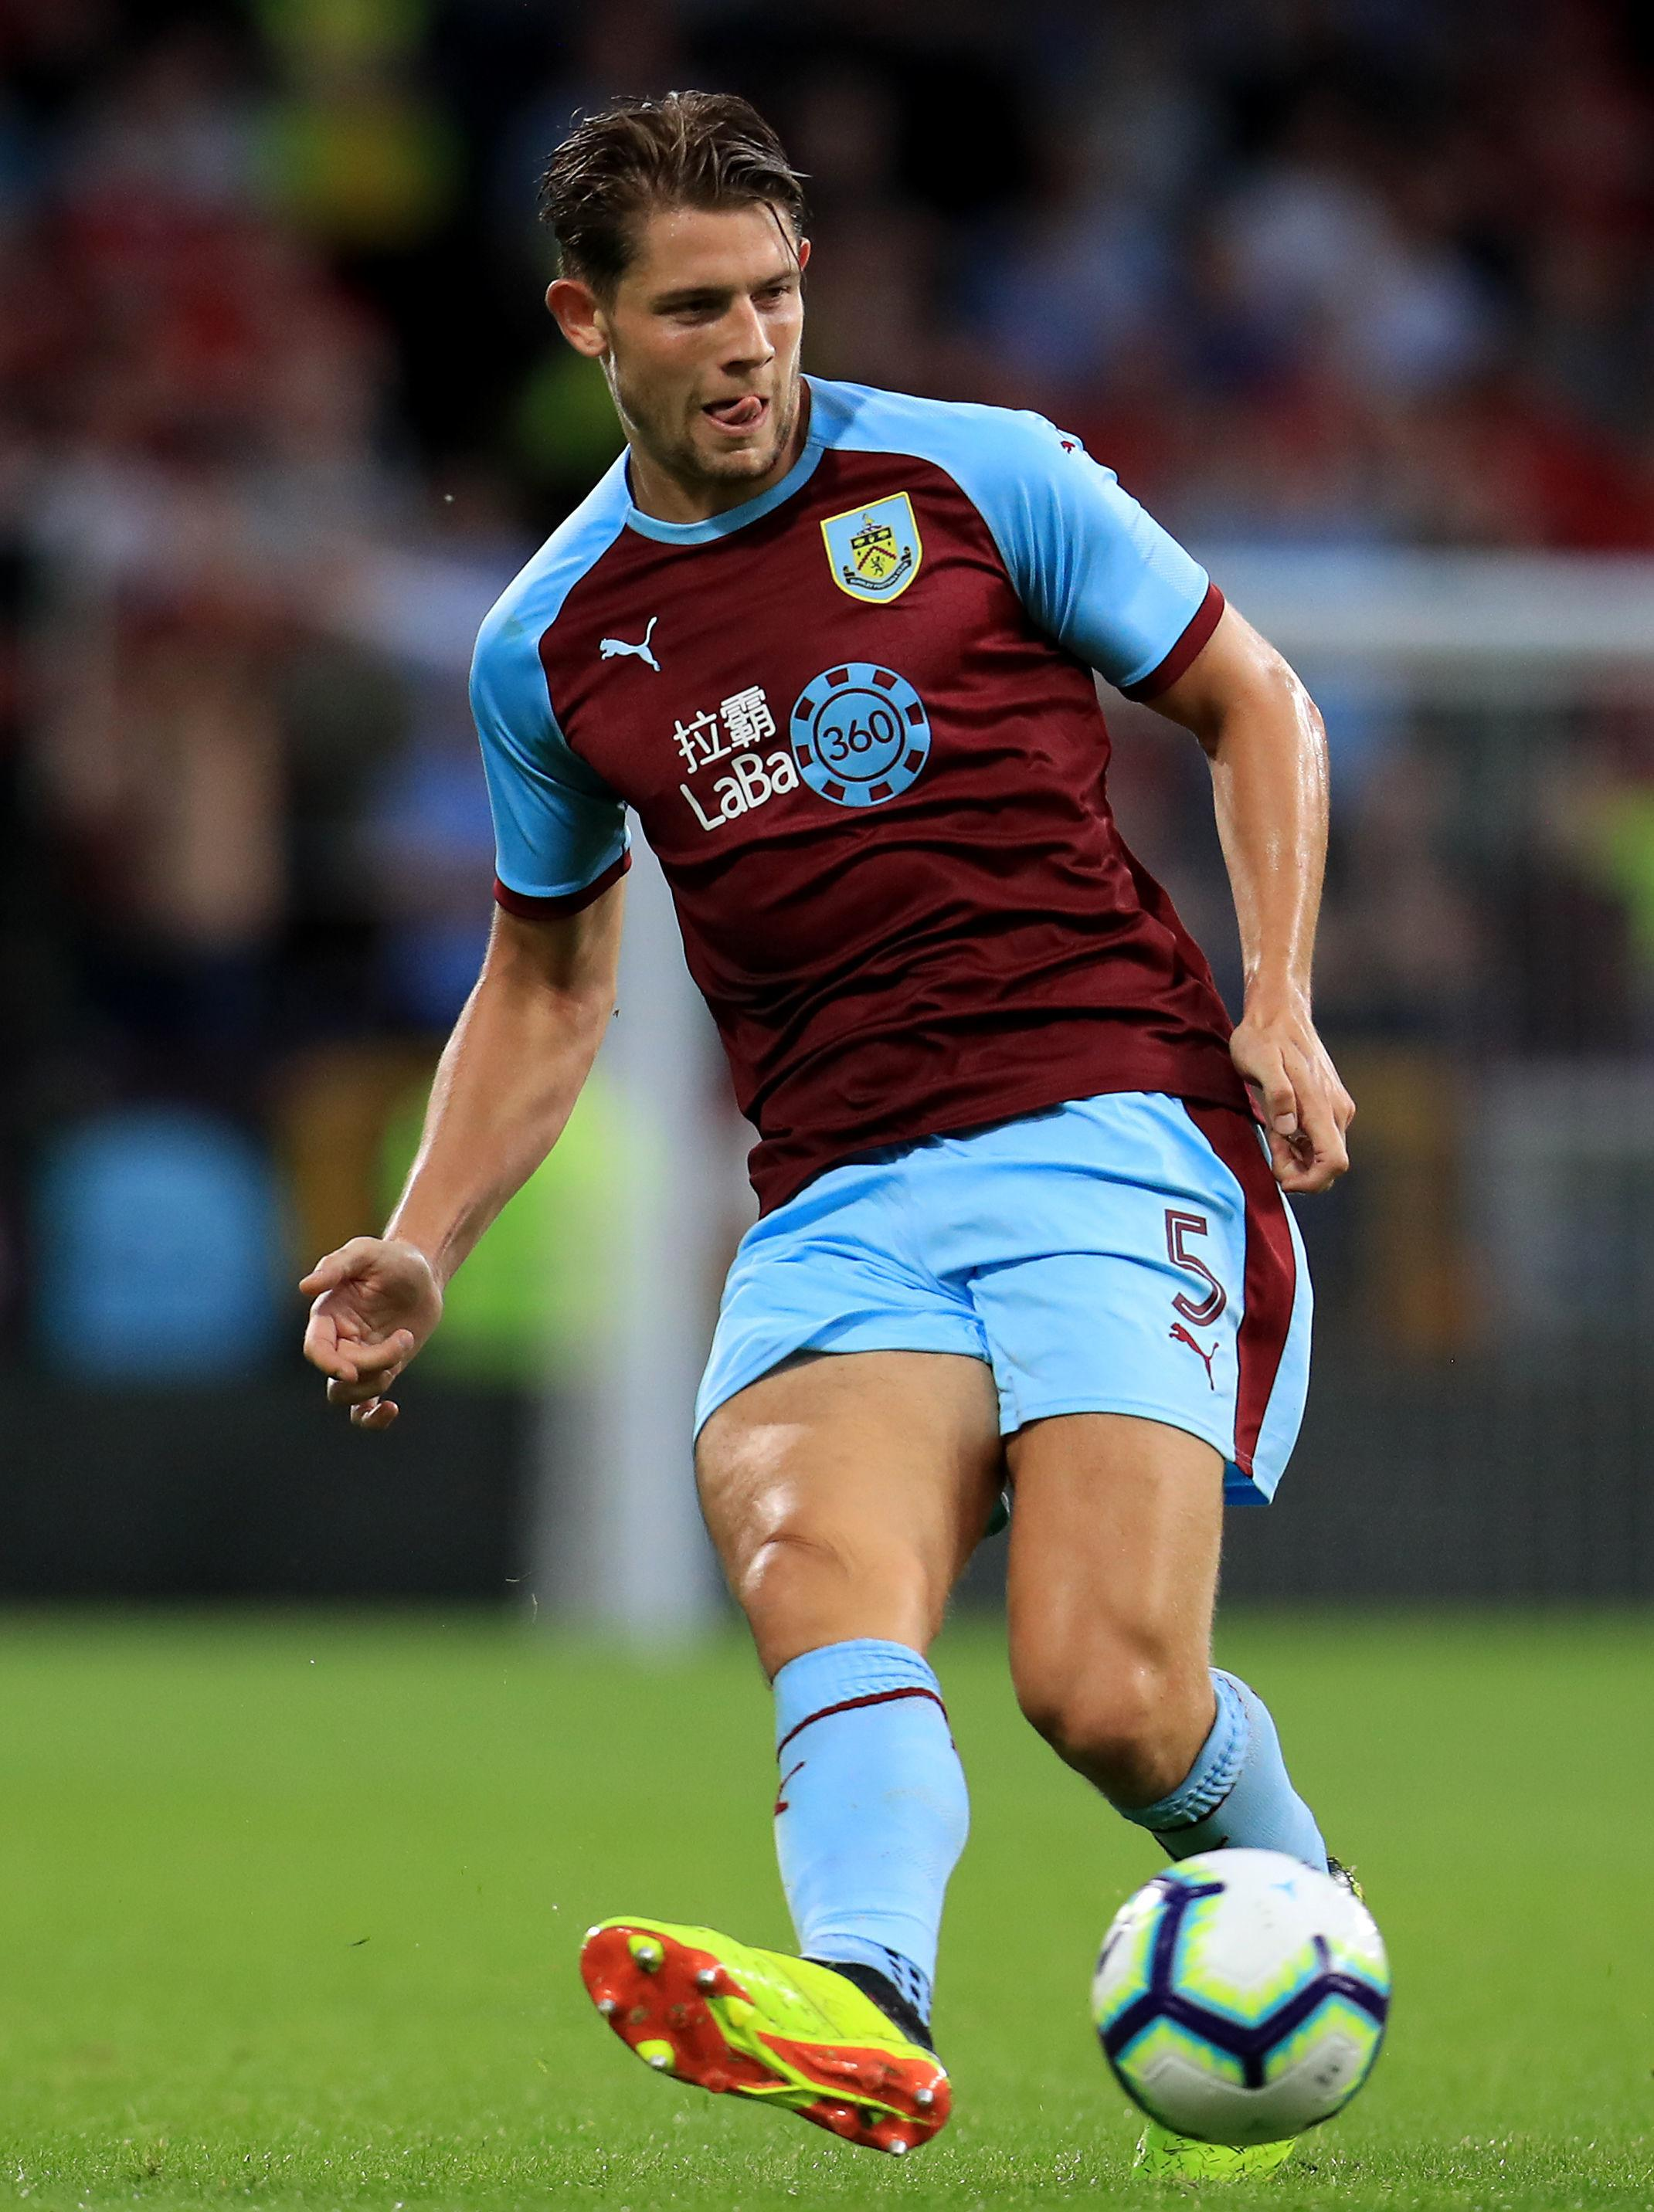 A groin injury could rule Tarkowski out